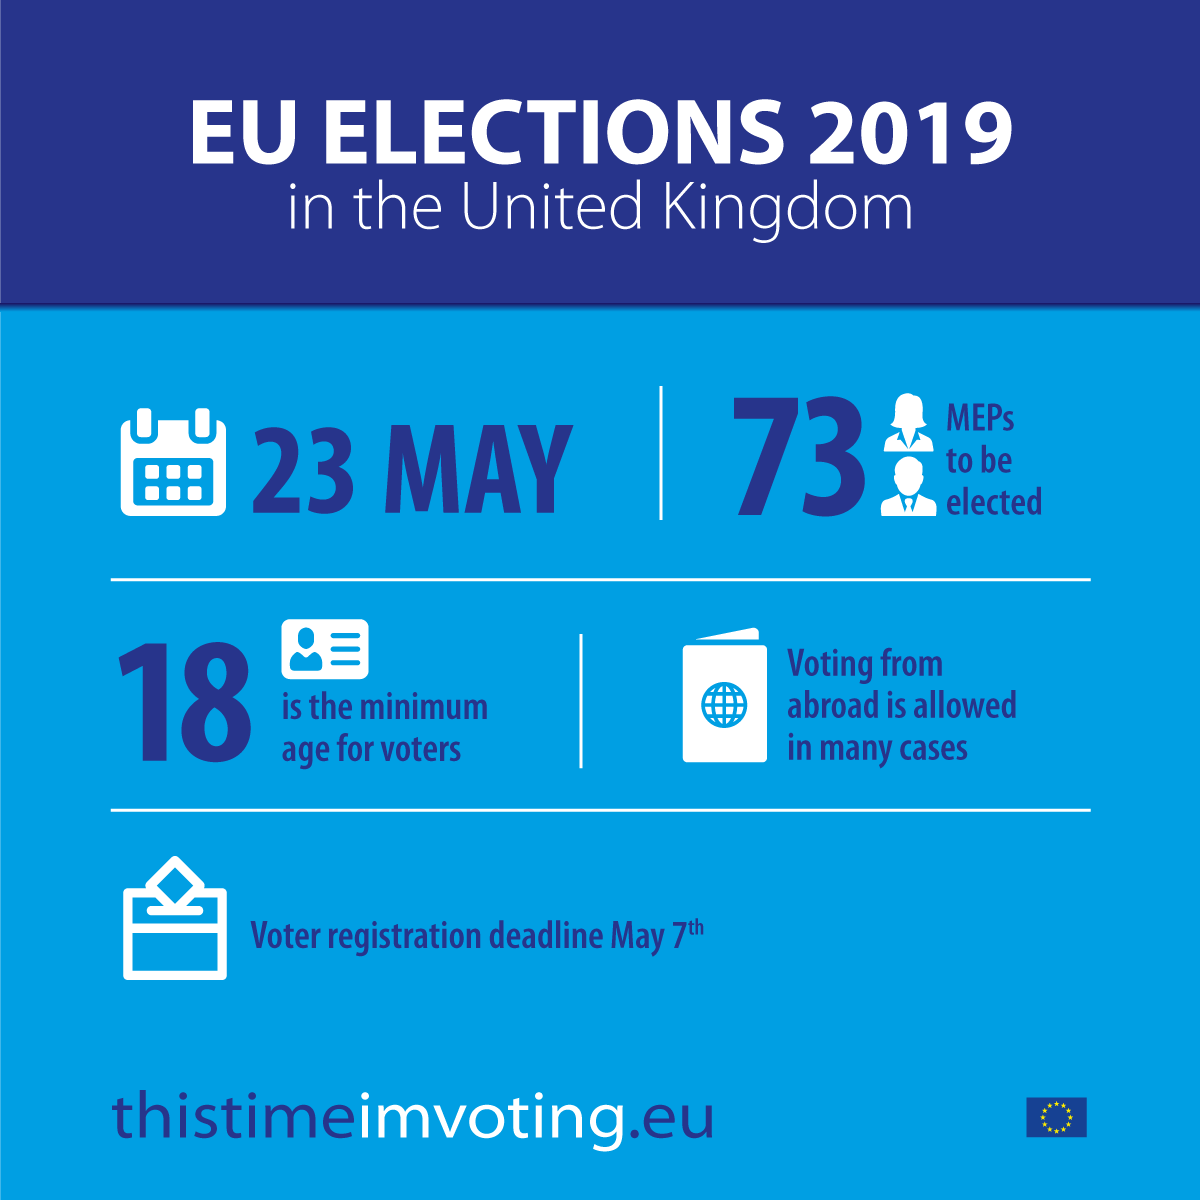 #EUElections2019: voting in the UK takes place on Thursday 23 May. Everything you need to know on how to vote can be found here eptwitter.eu/qhAh